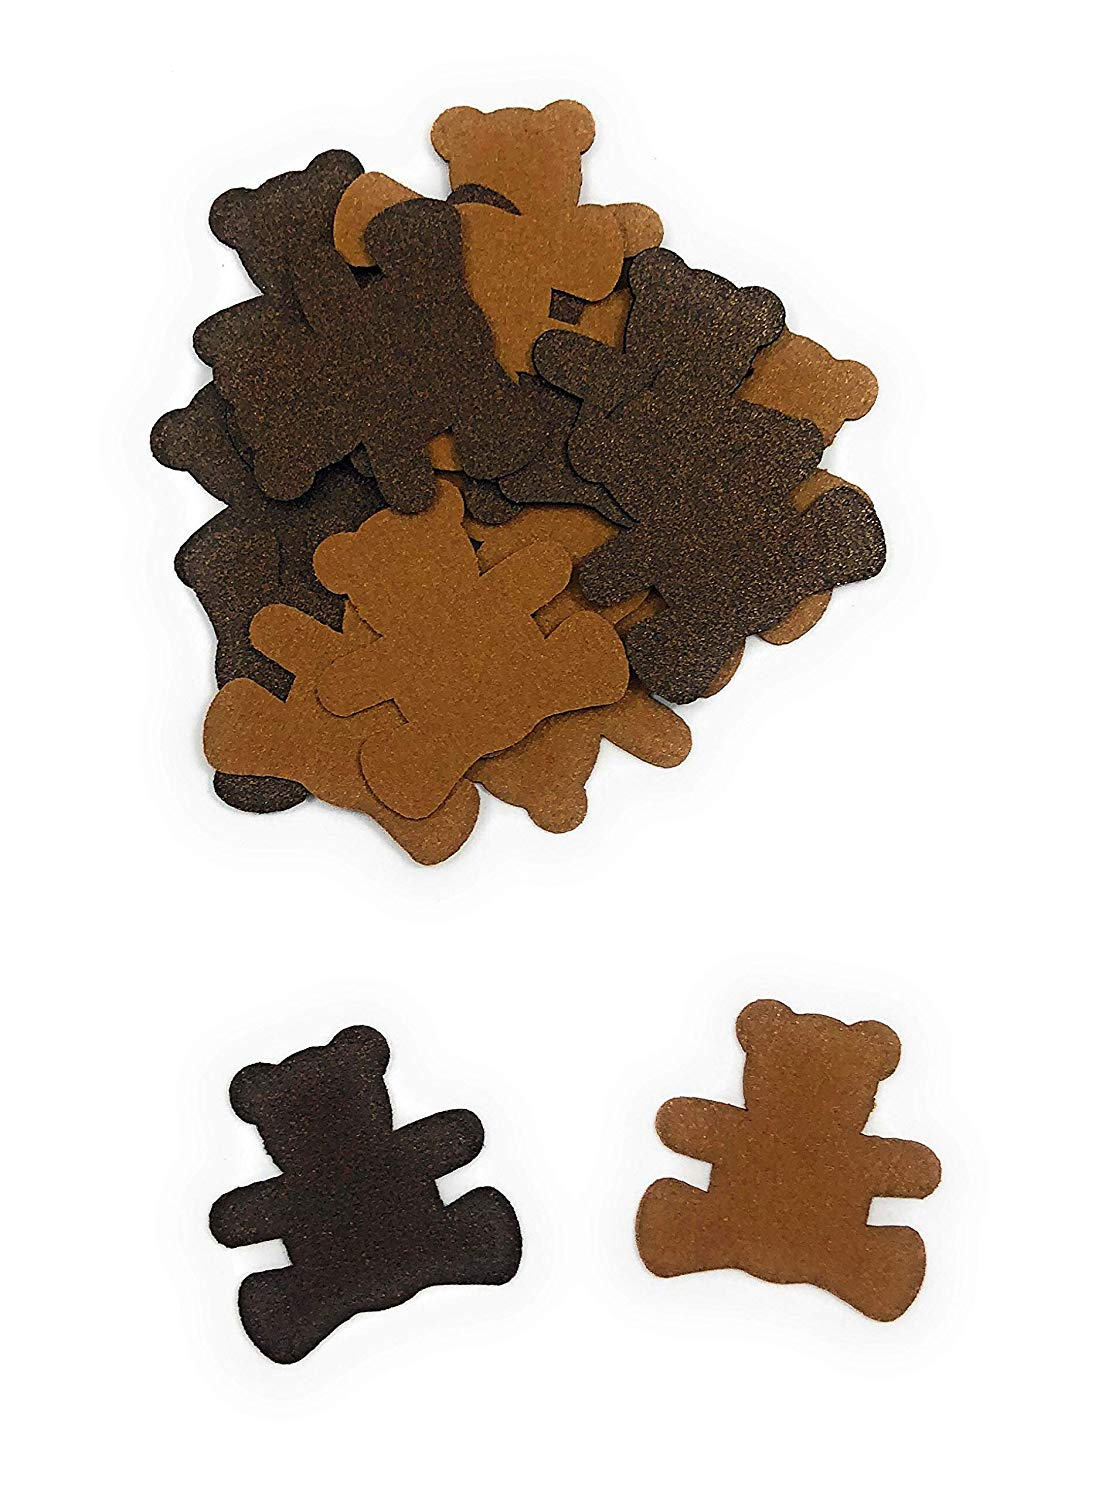 Teddy Bear Confetti in Light and Dark Brown - 100 Pieces